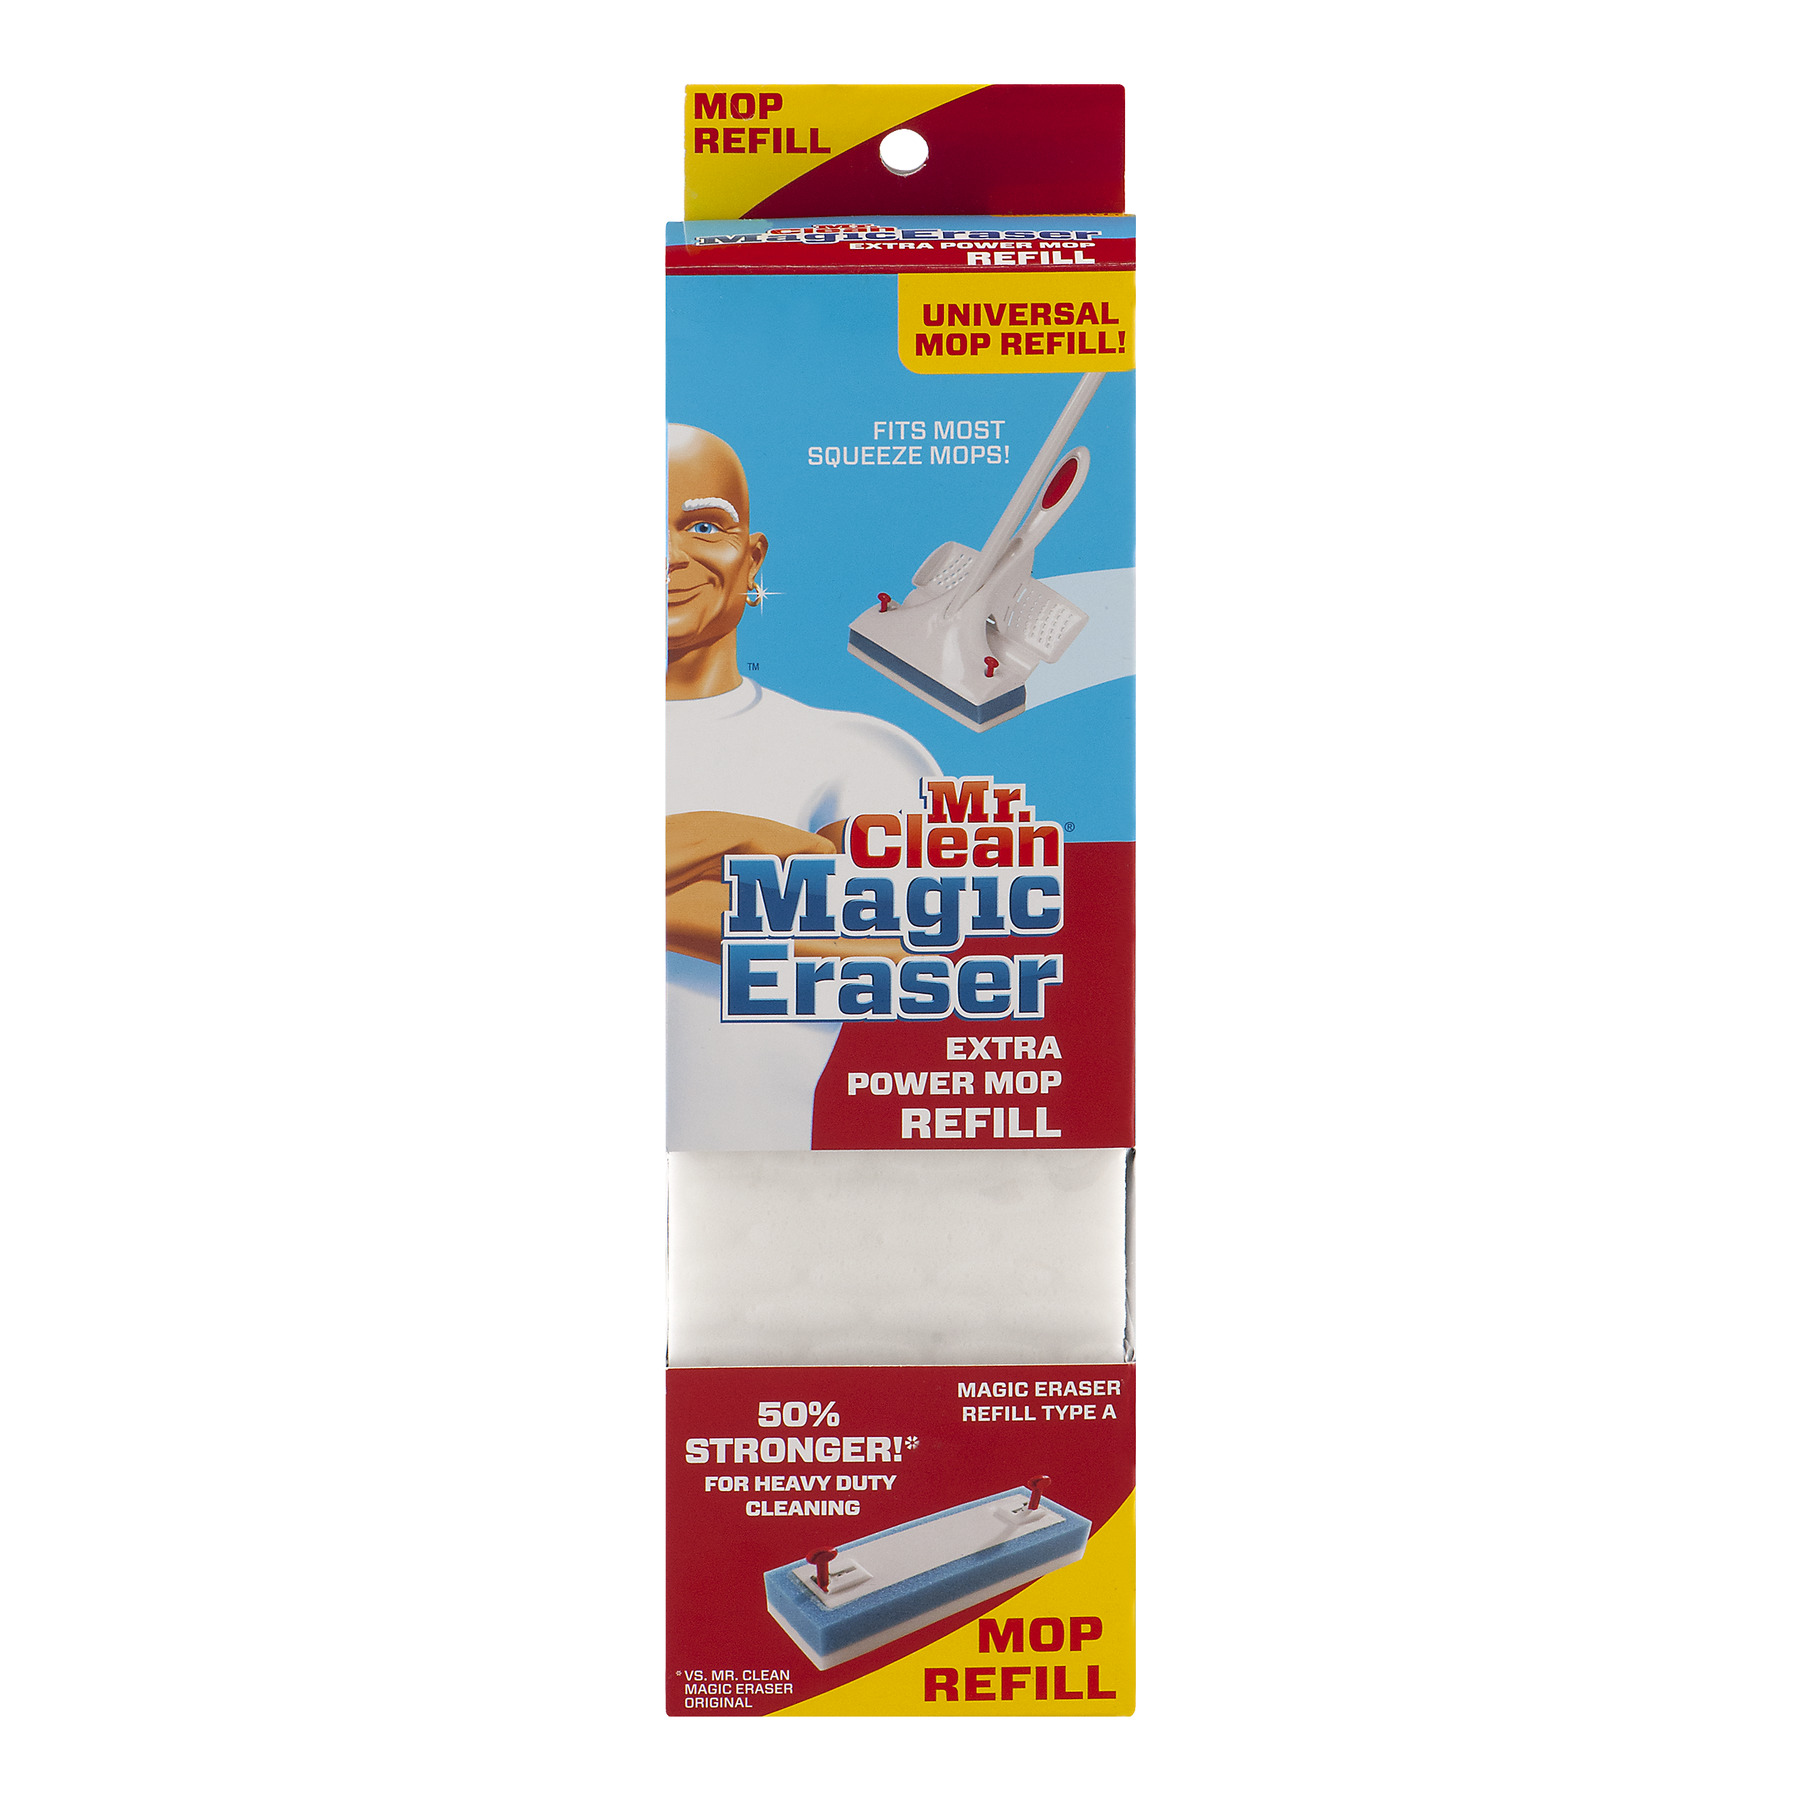 Mr. Clean Magic Eraser Extra Power Mop Refill, 1.0 CT